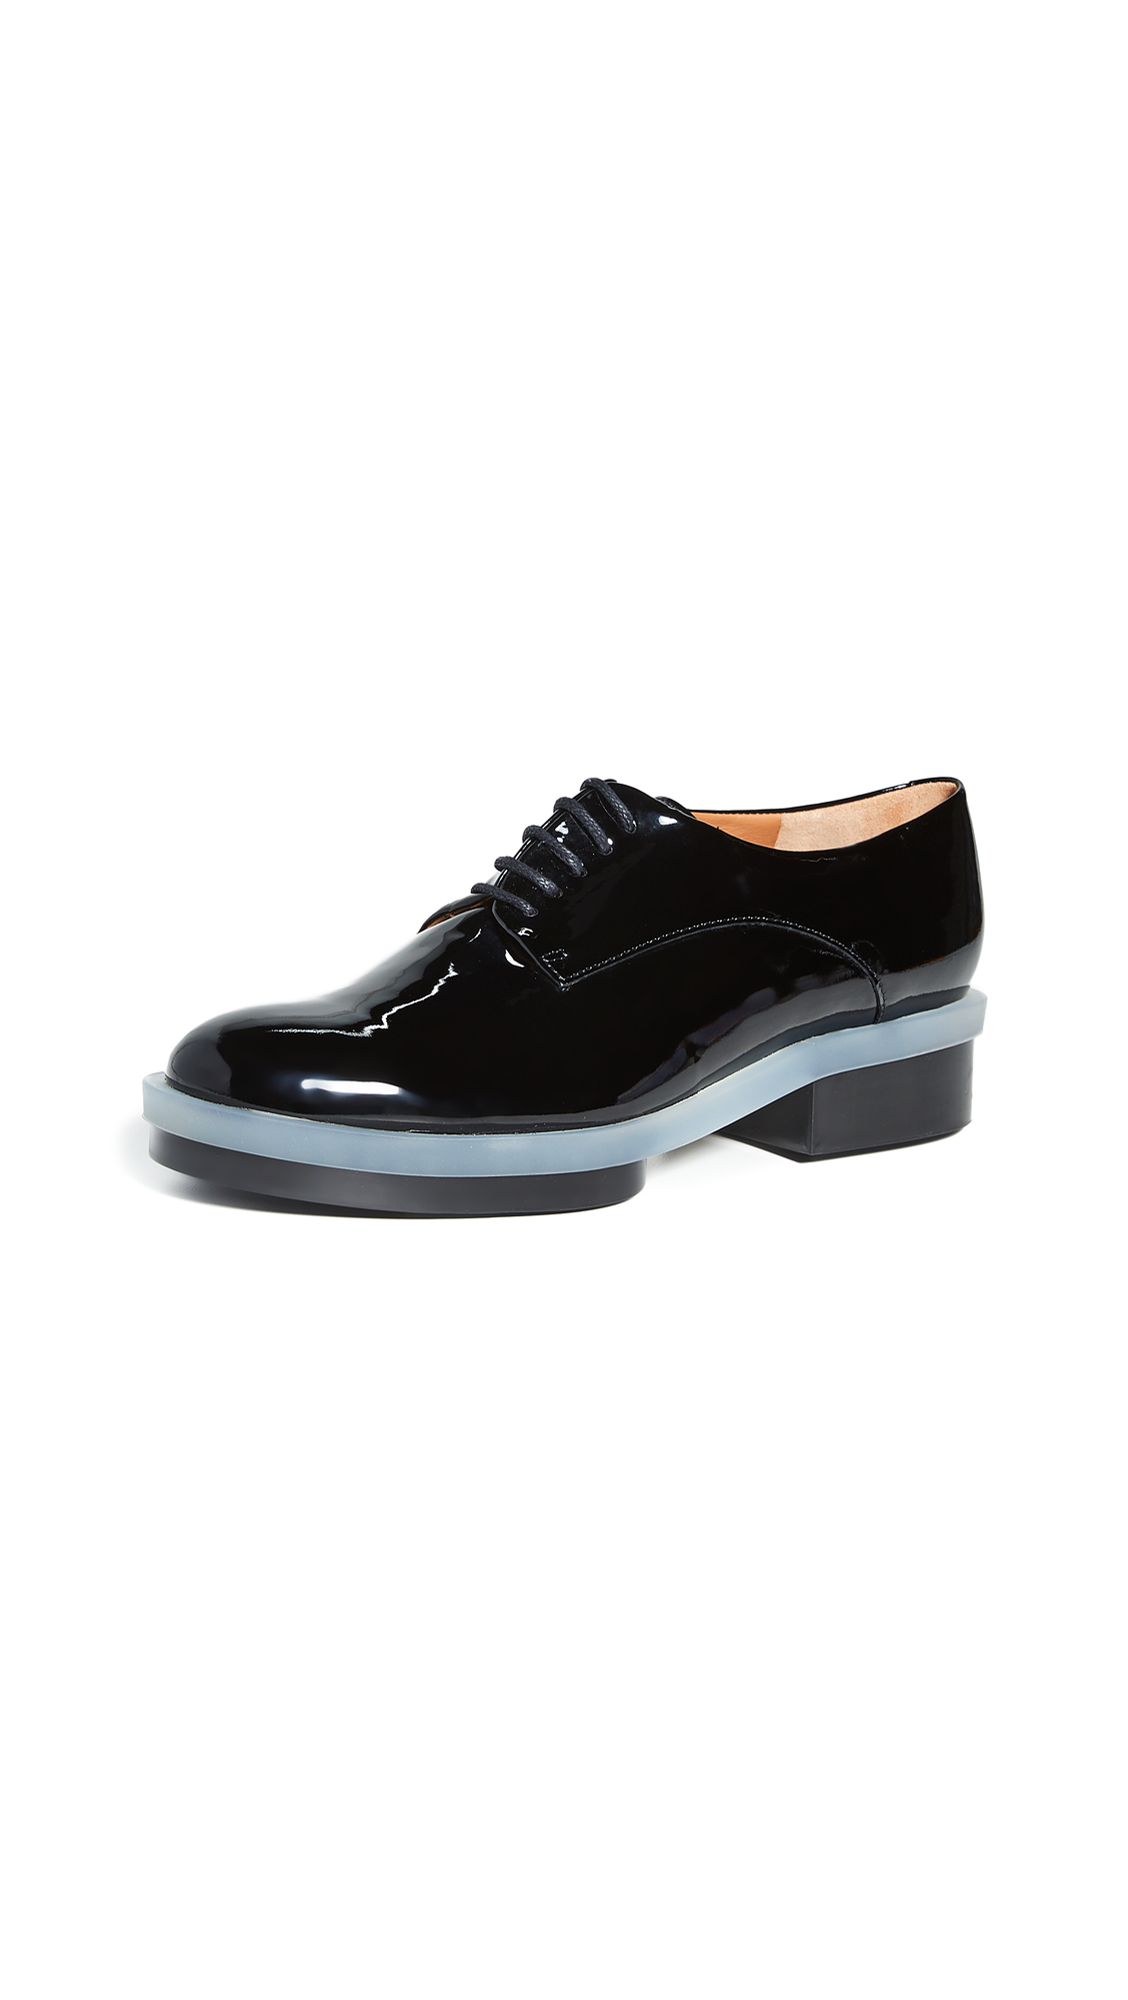 Buy Clergerie Roma Oxfords online, shop Clergerie